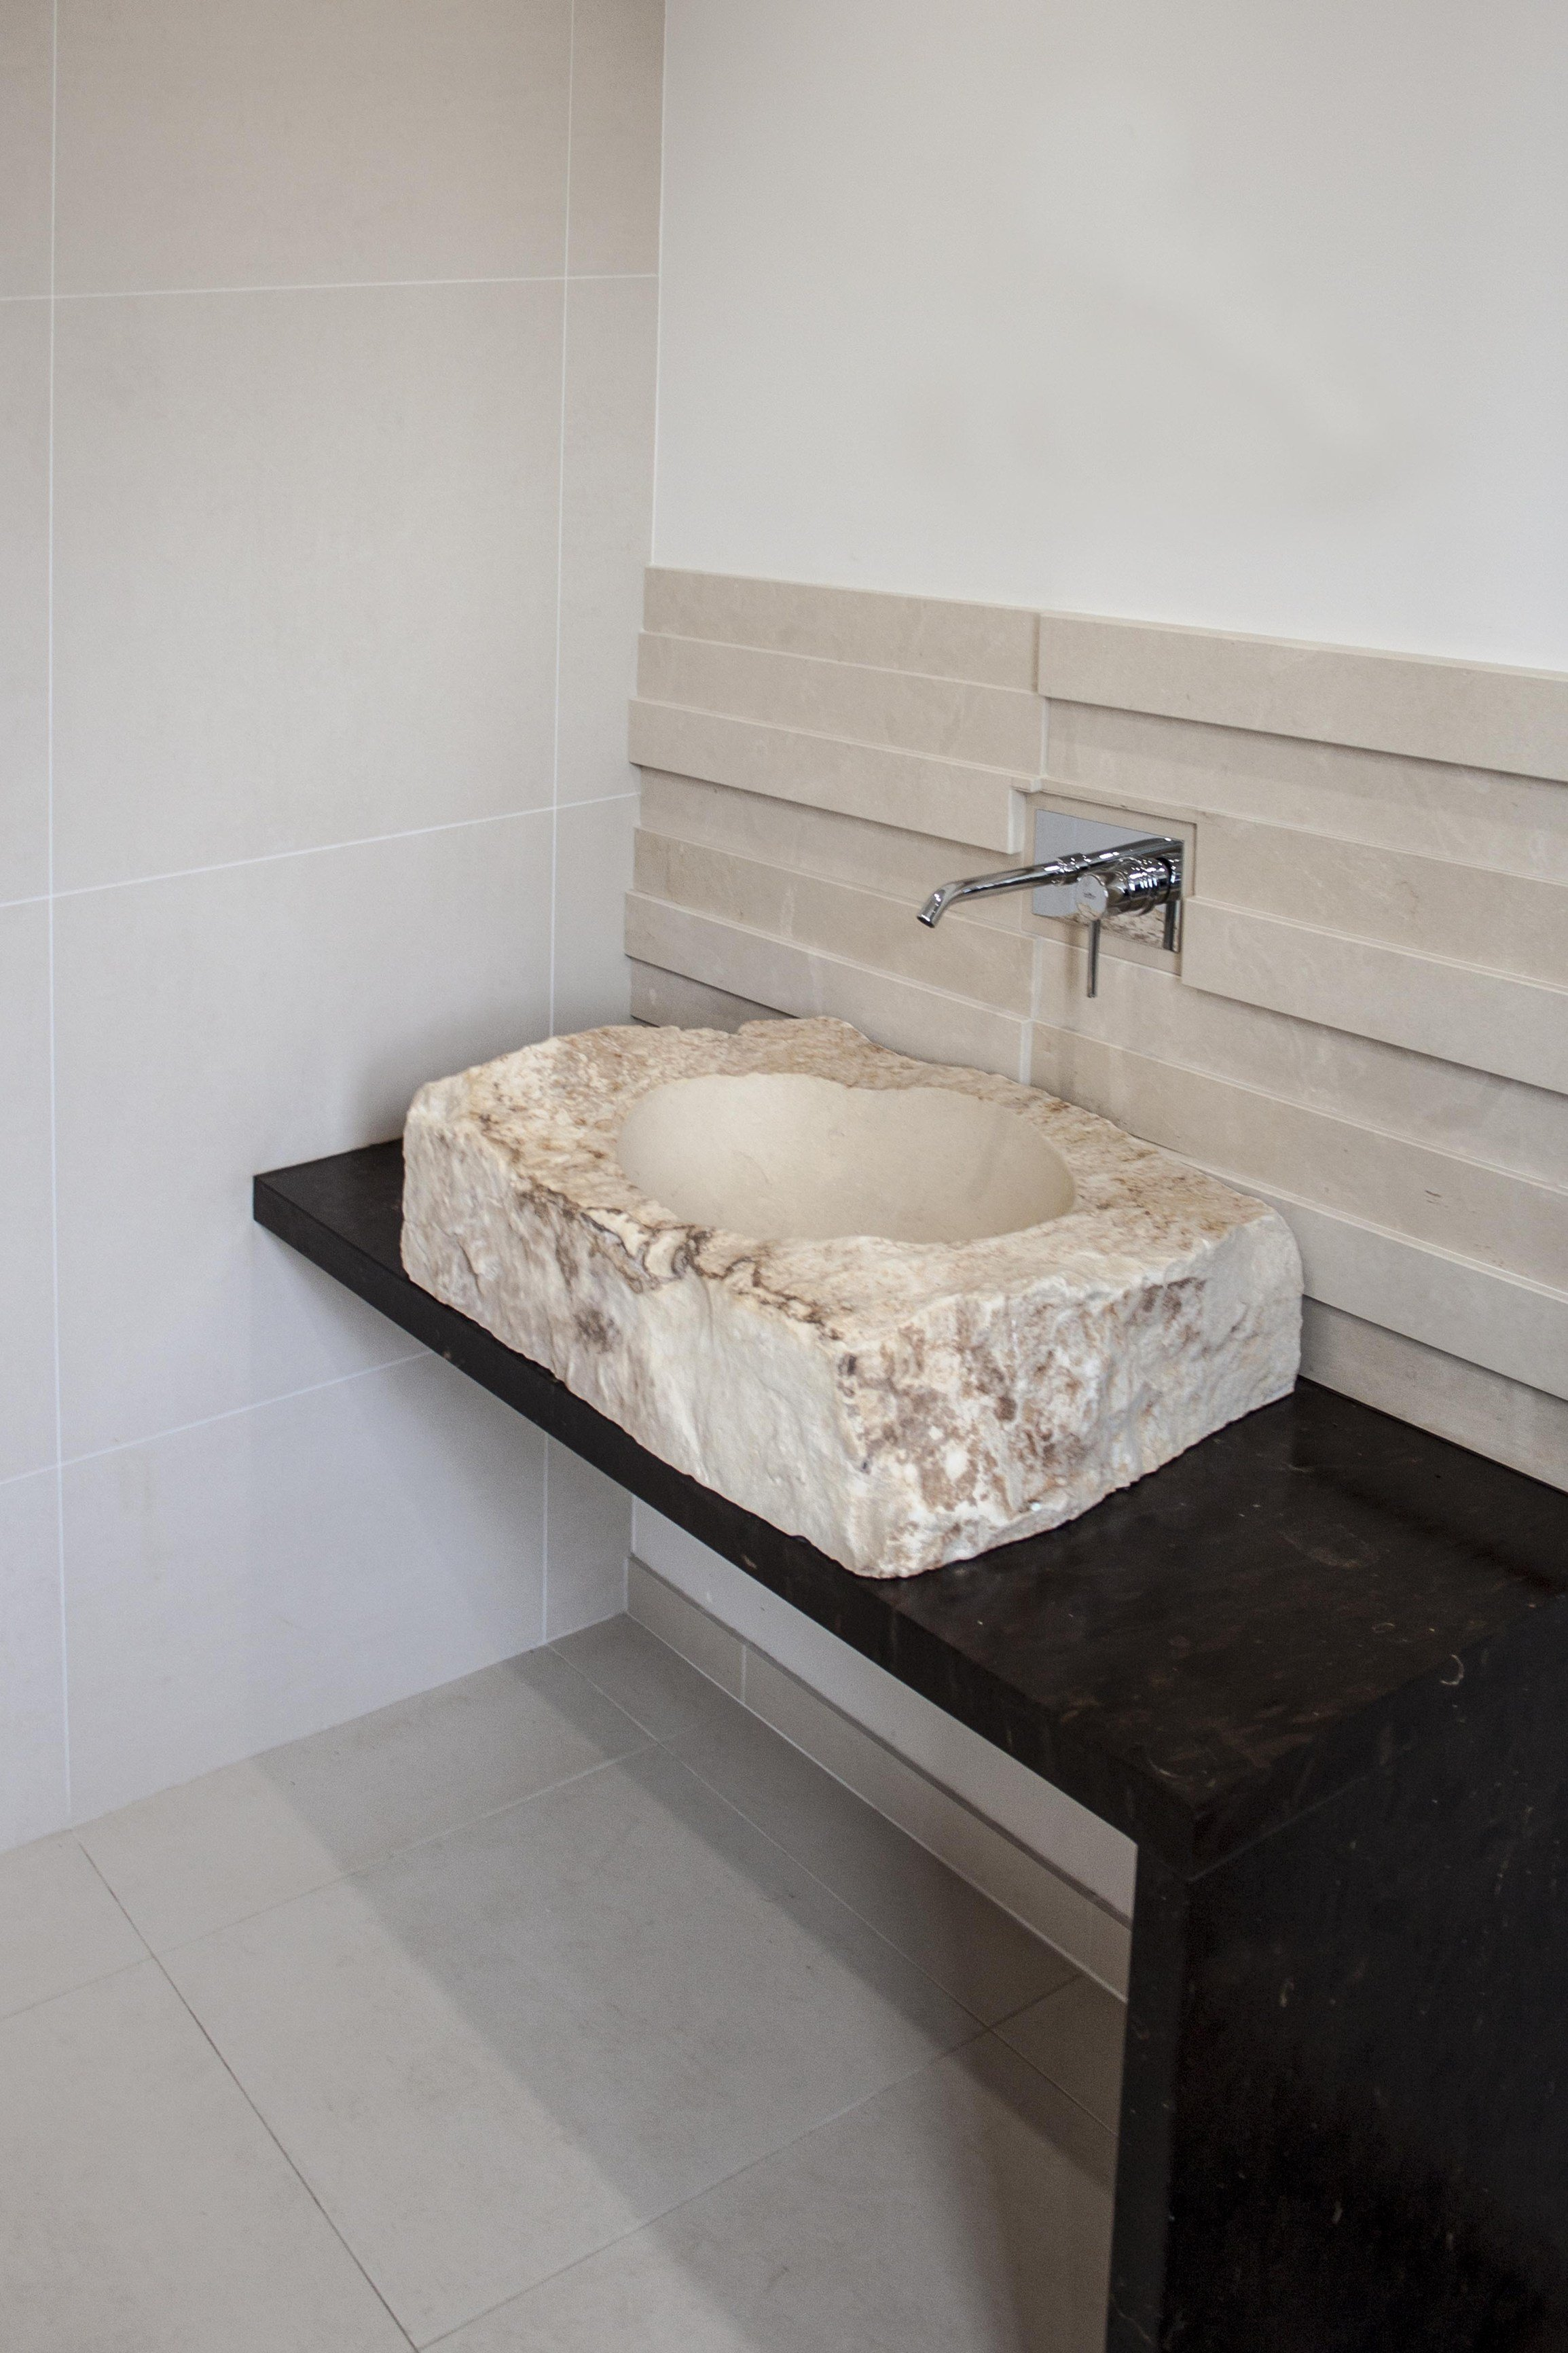 Lavabo in pietra calcarea by Sgarlata Emanuele & C. design ...